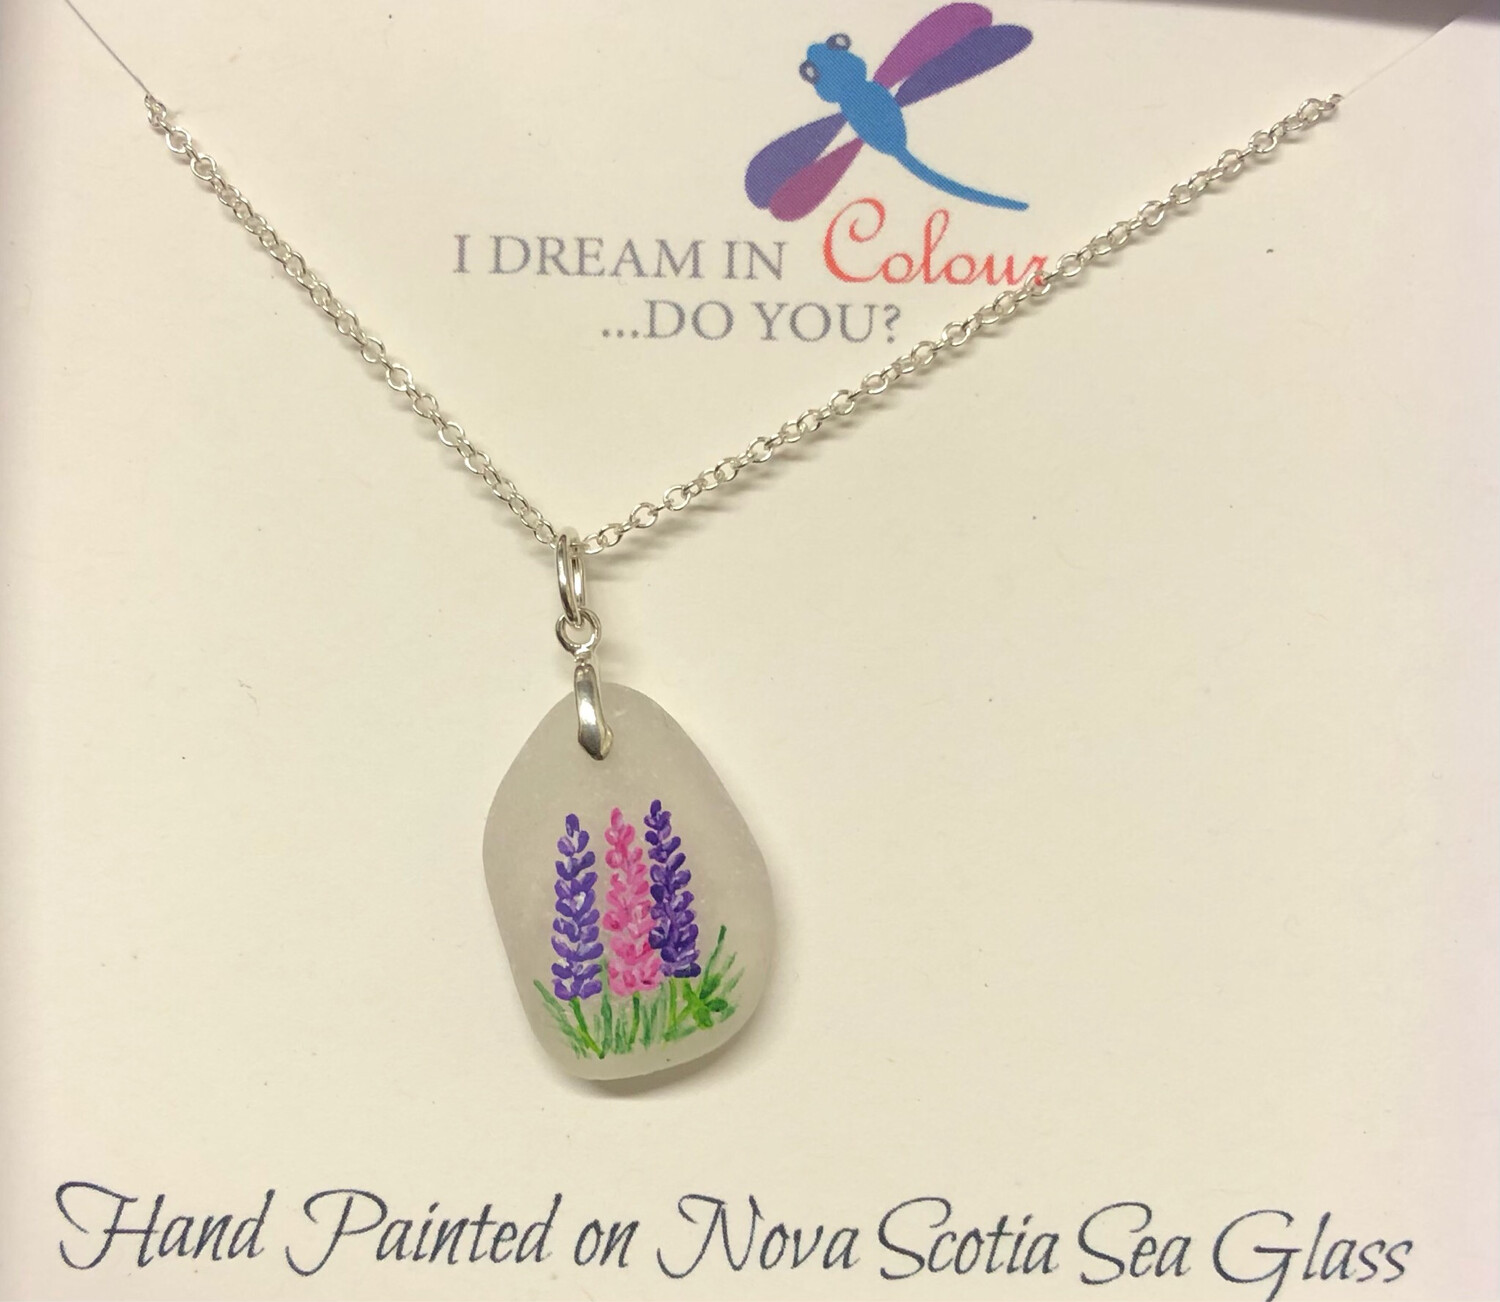 Painted Sea Glass, Lupins - I Dream in Colour